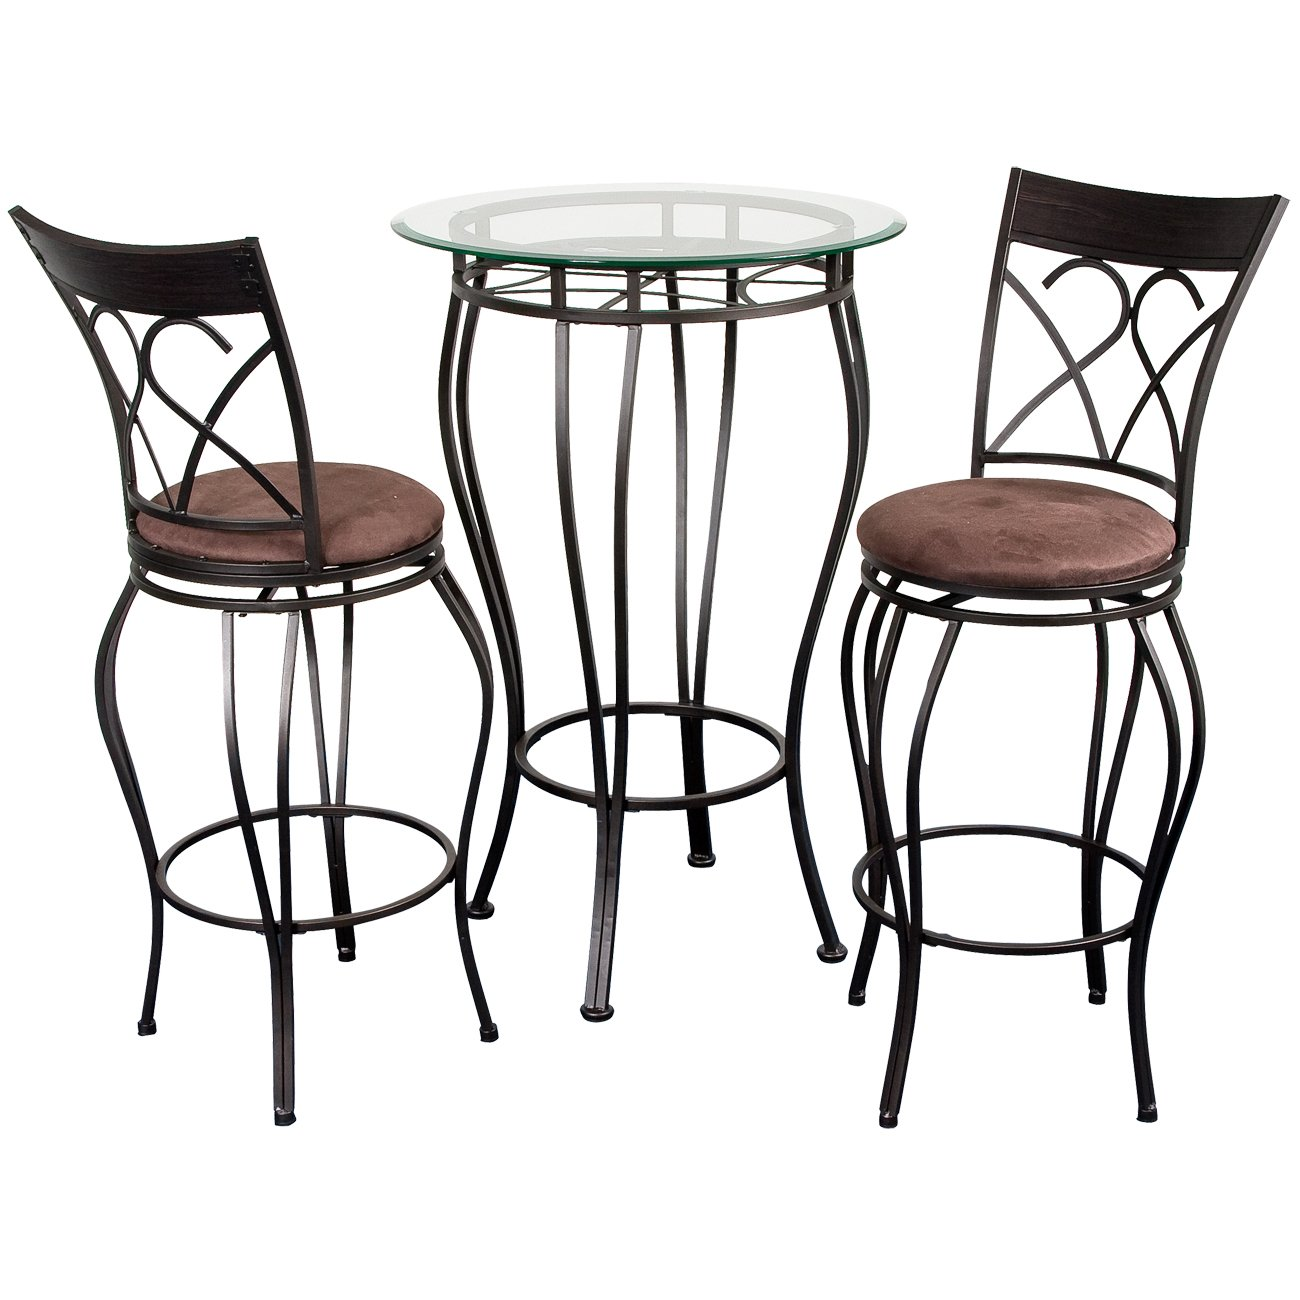 amazoncom home source industries fancy bistro decorative metal pub table with glass top and 2 stools black kitchen u0026 dining